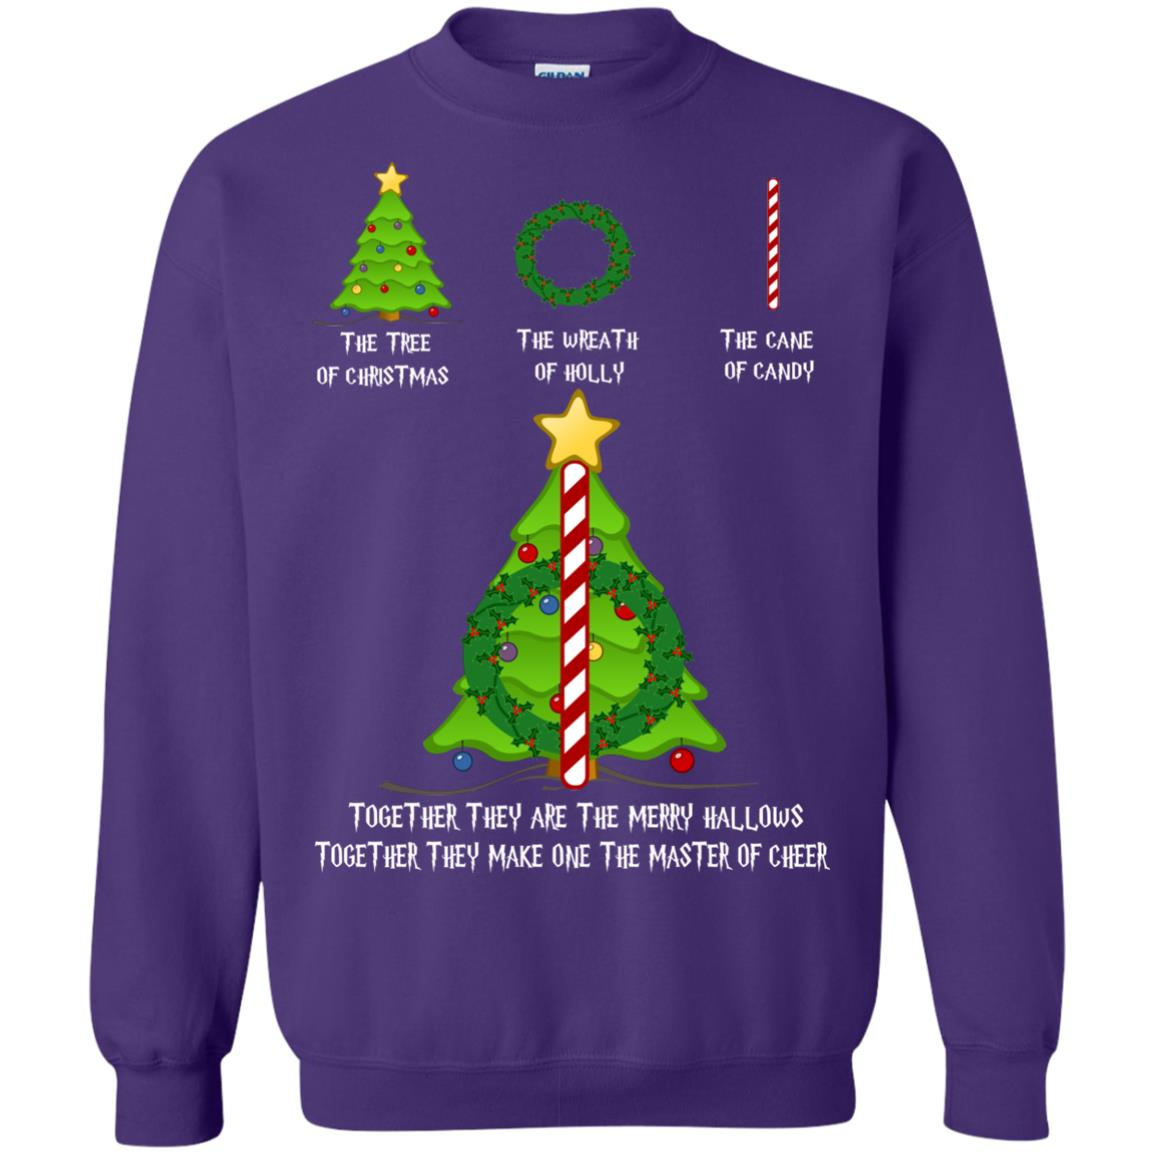 image 372px Harry Potter: The Tree Of Christmas The Wreath of Holly The Cane Of Candy Sweater